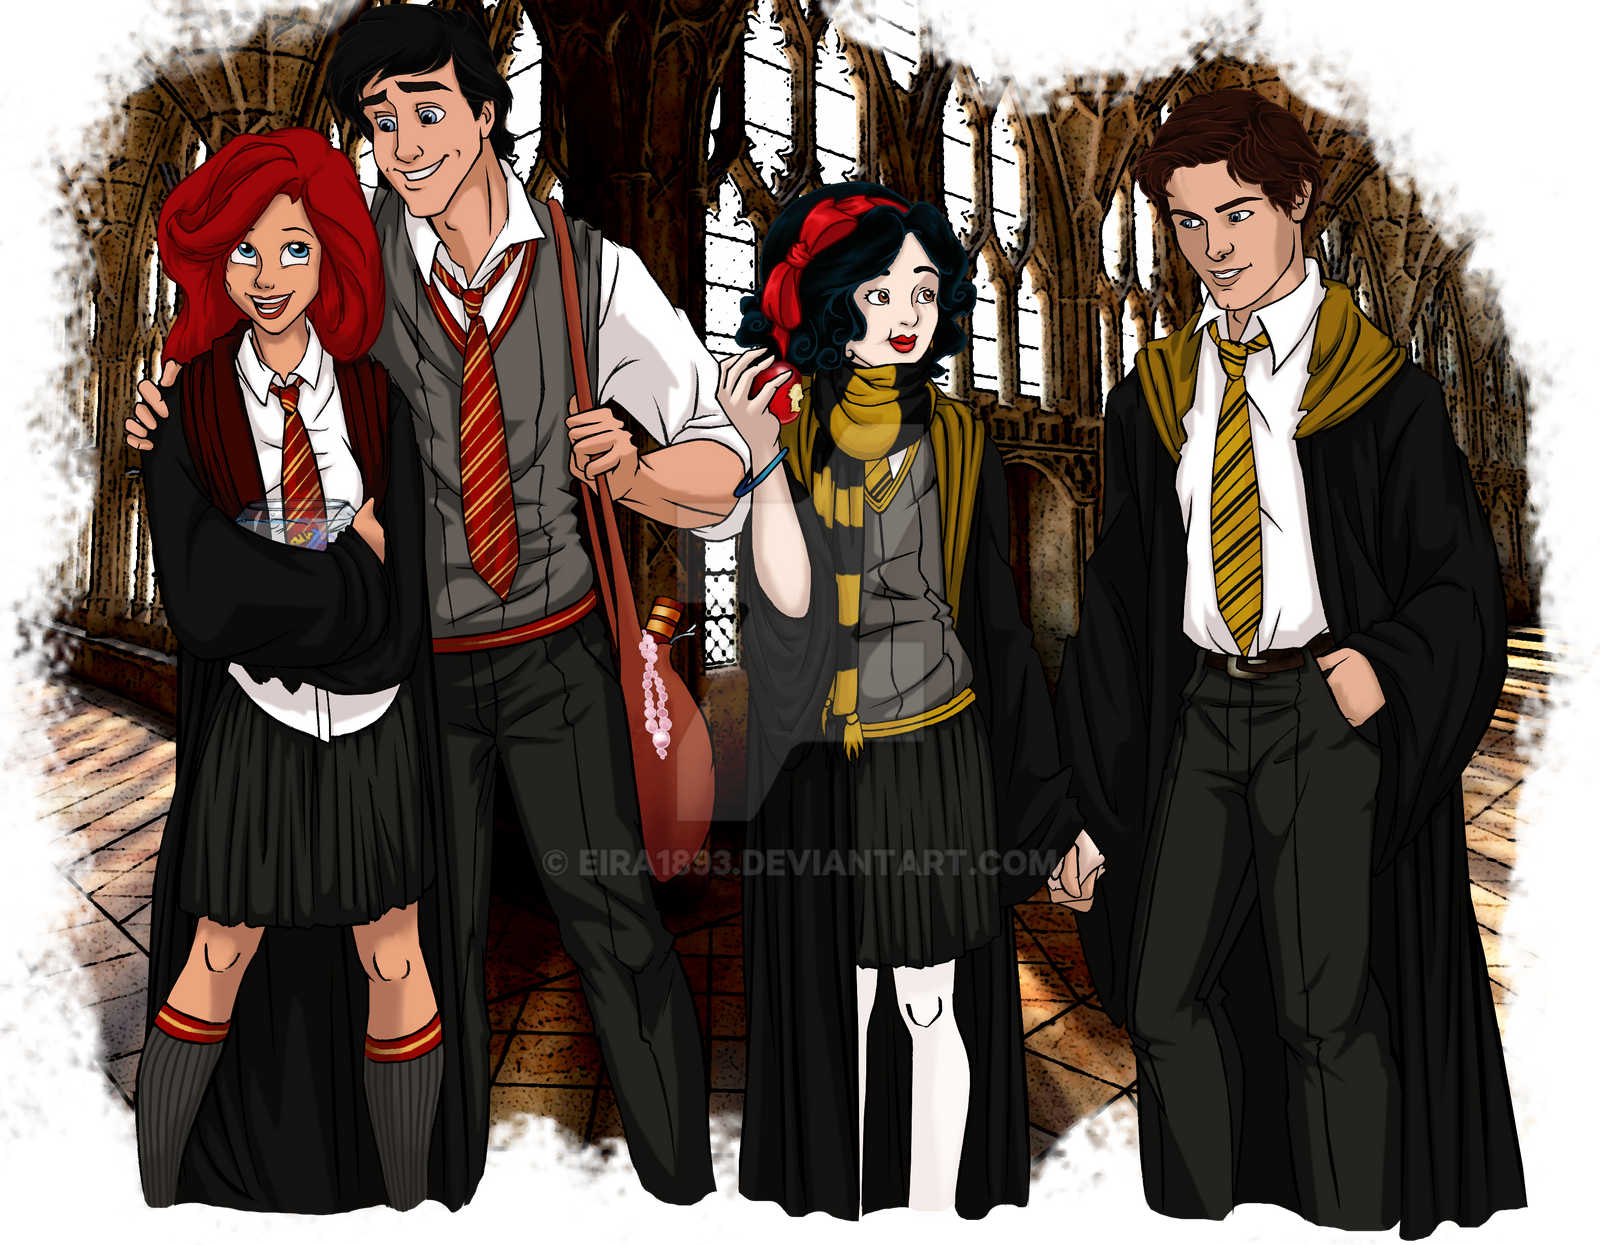 Anime Characters Hogwarts Houses : Disney at hogwarts by eira on deviantart